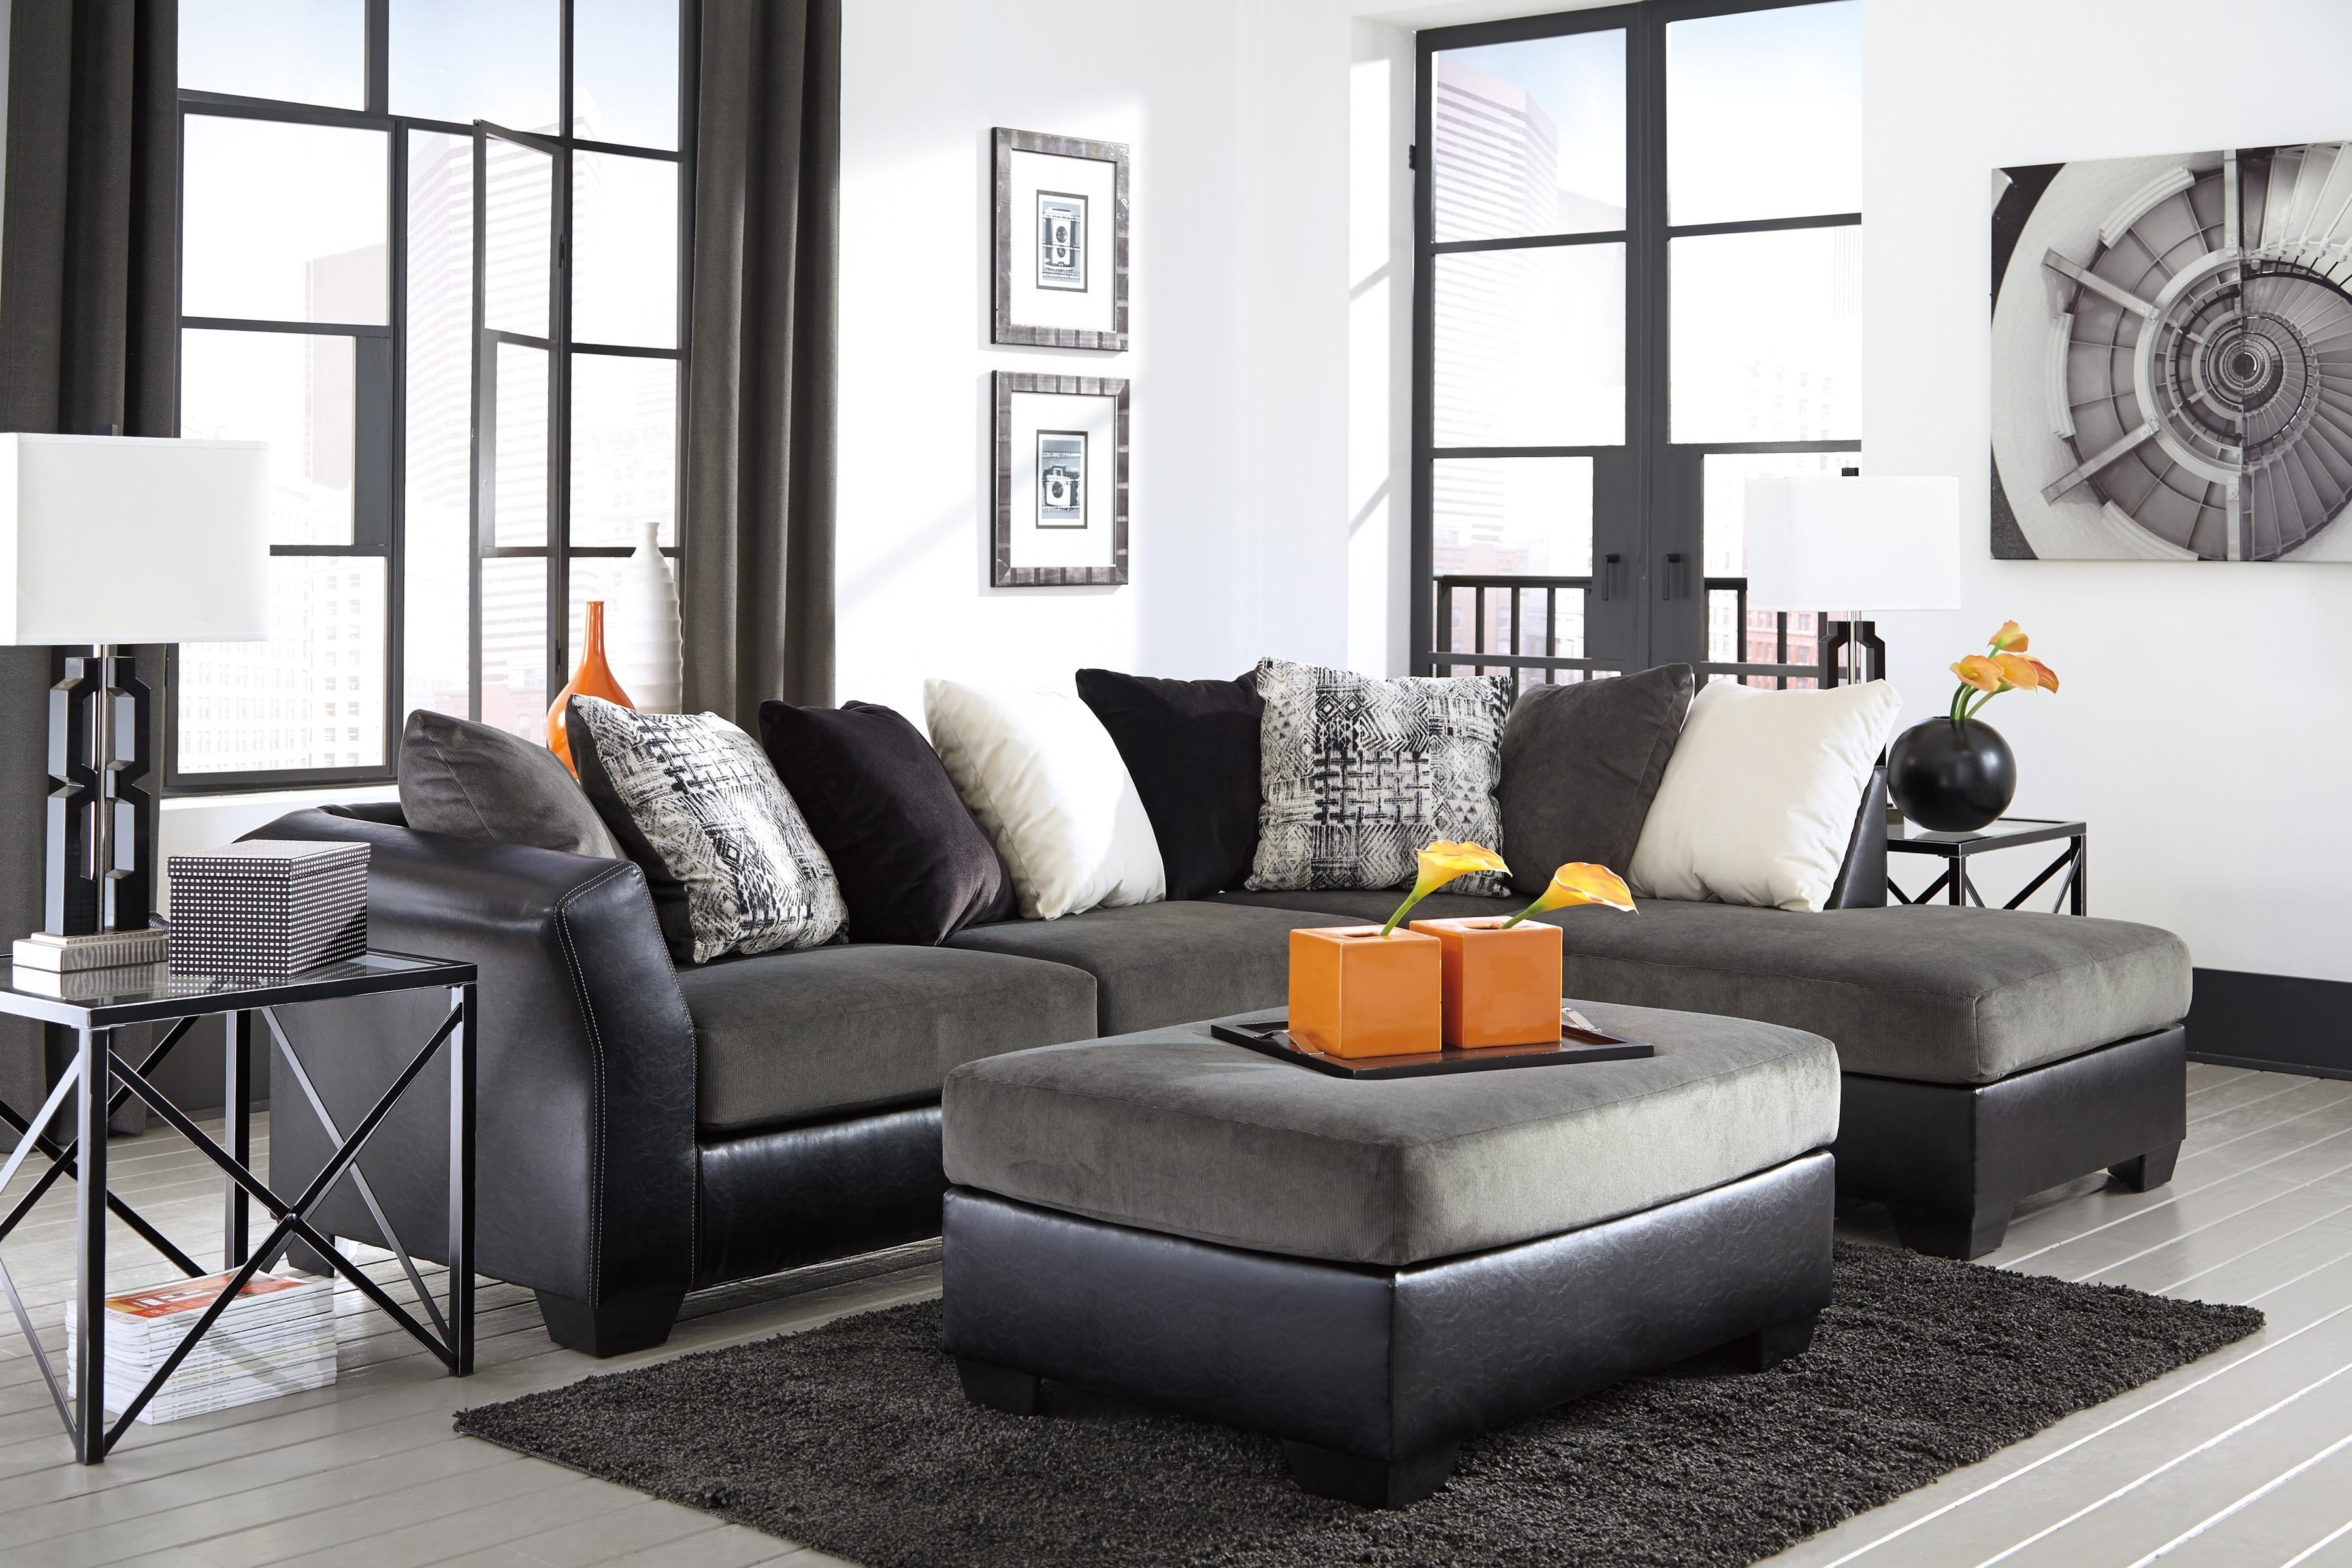 Ashley Furniture Store Janesville Wi | Osetacouleur Pertaining To Janesville Wi Sectional Sofas (Image 2 of 10)